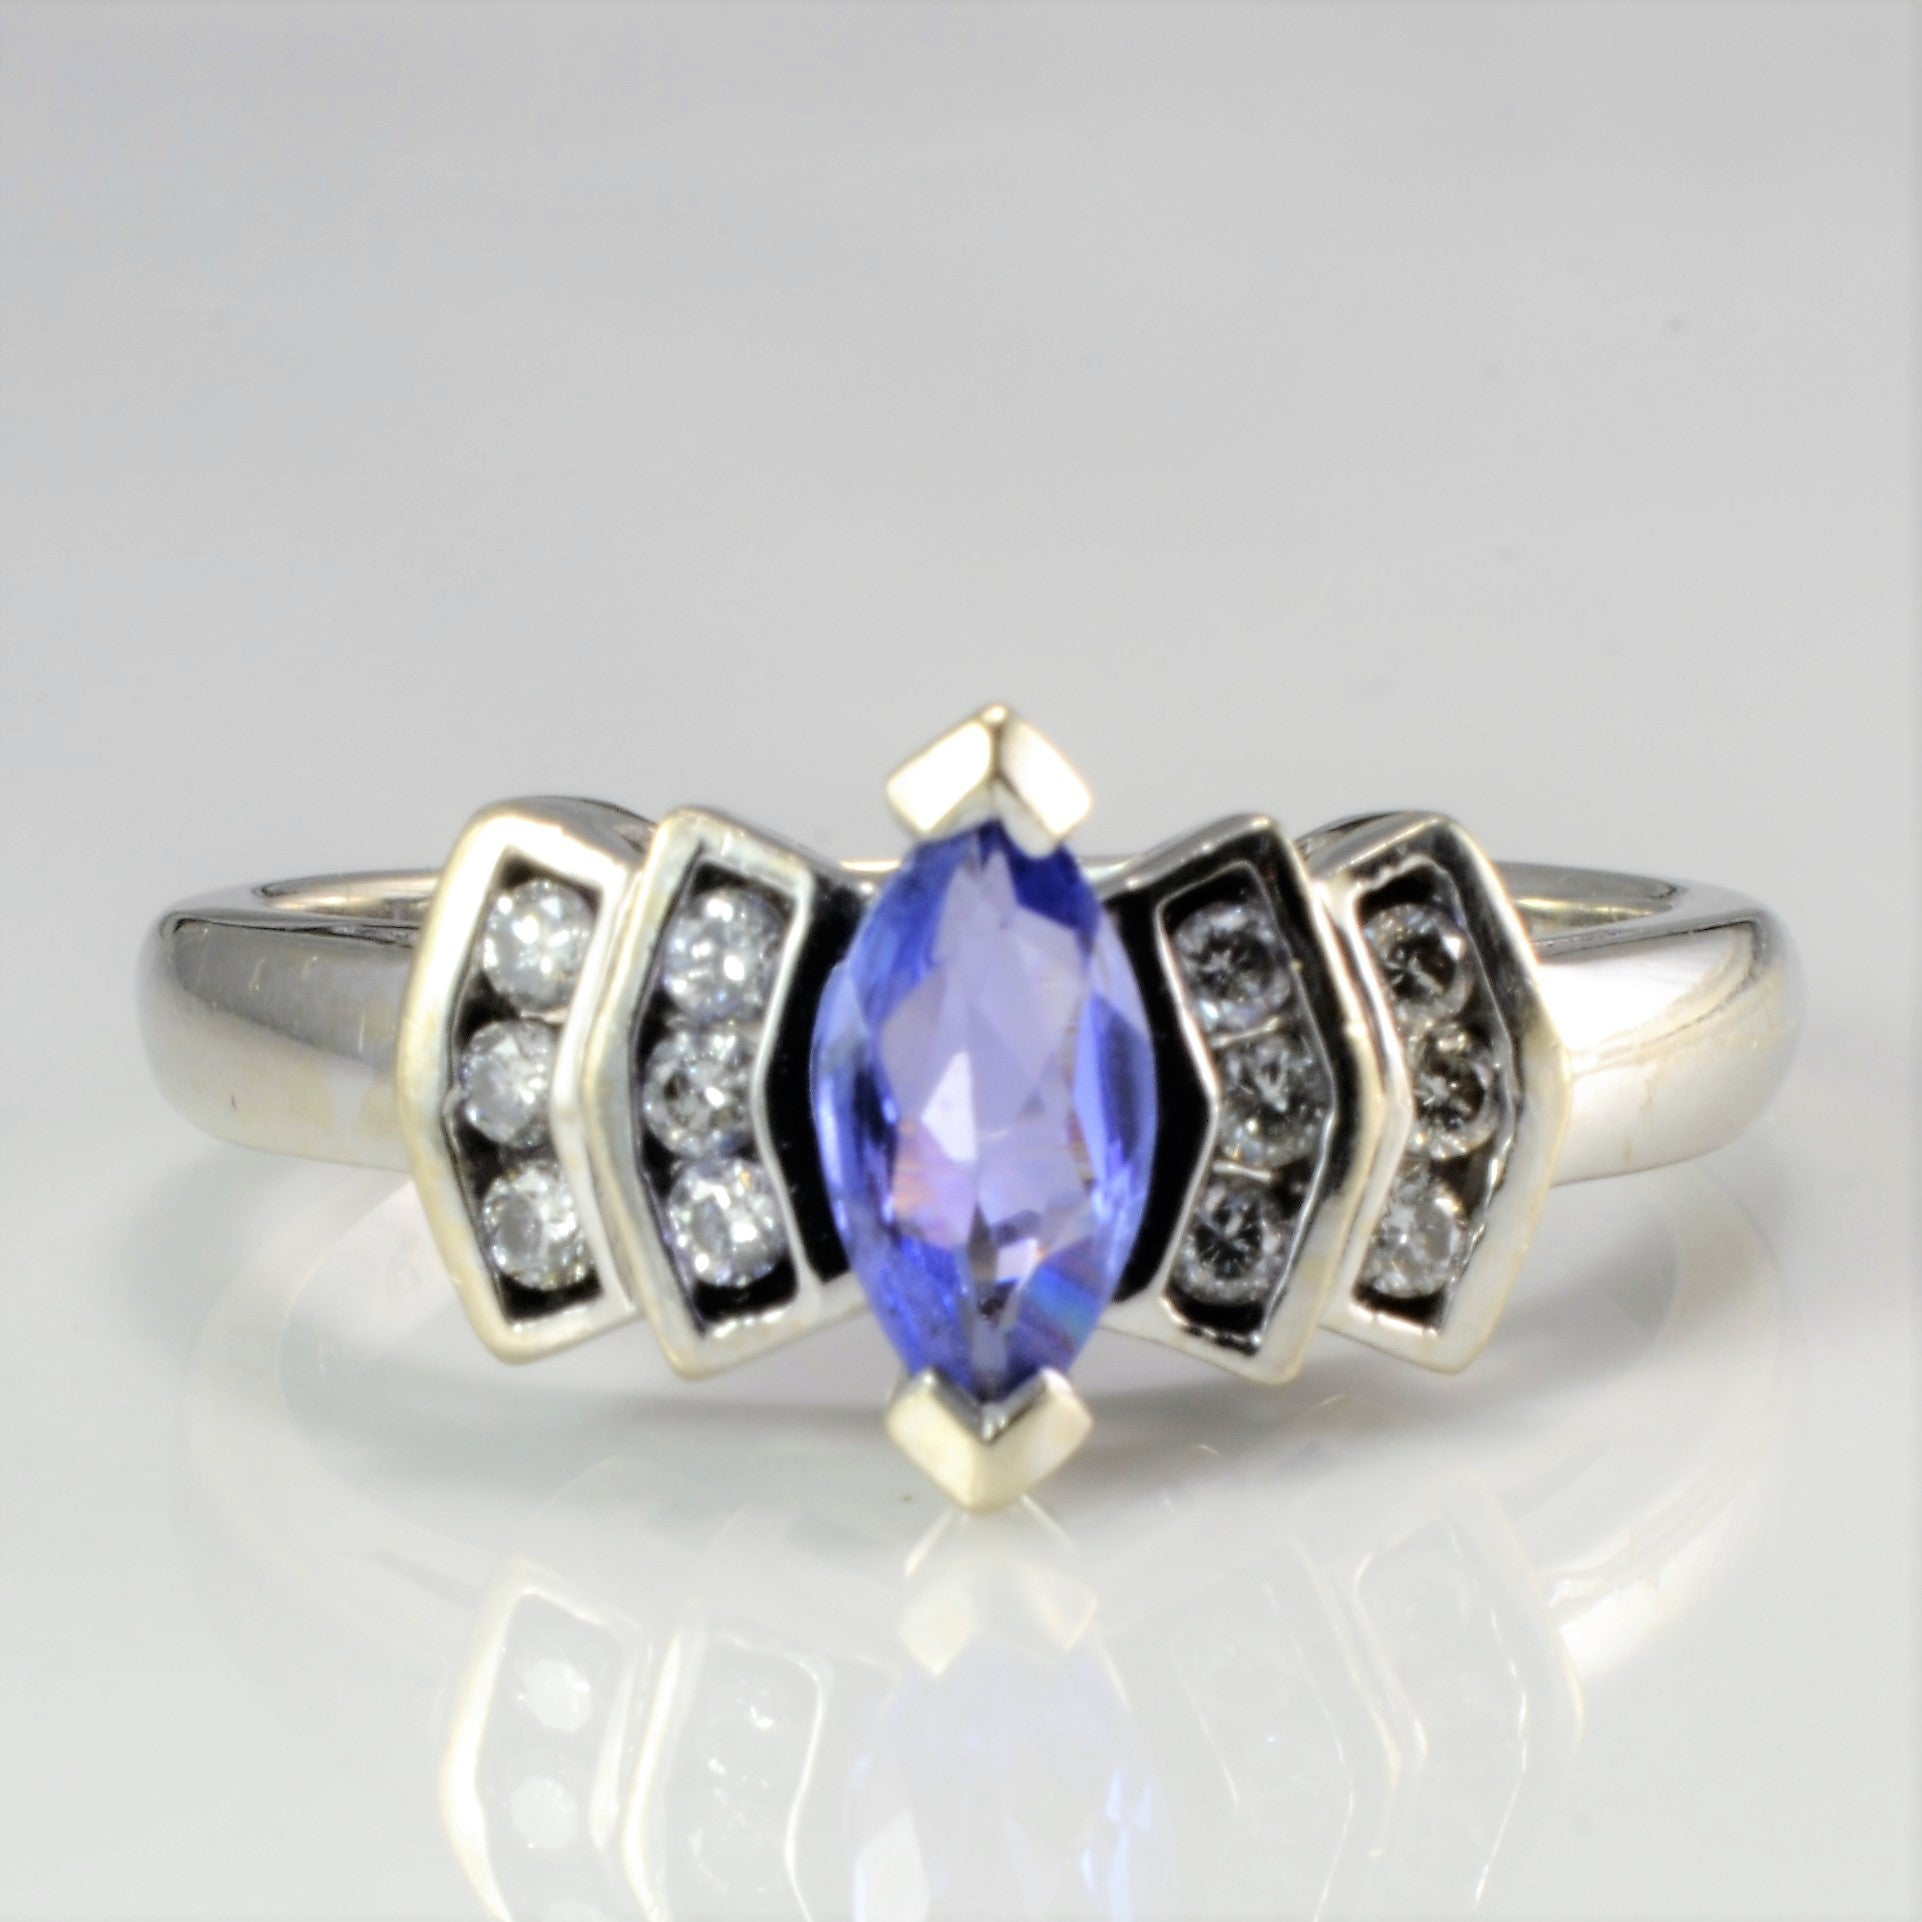 Solitaire Tanzanite & Accents Diamond Ring | 0.12 ctw, SZ 6 |